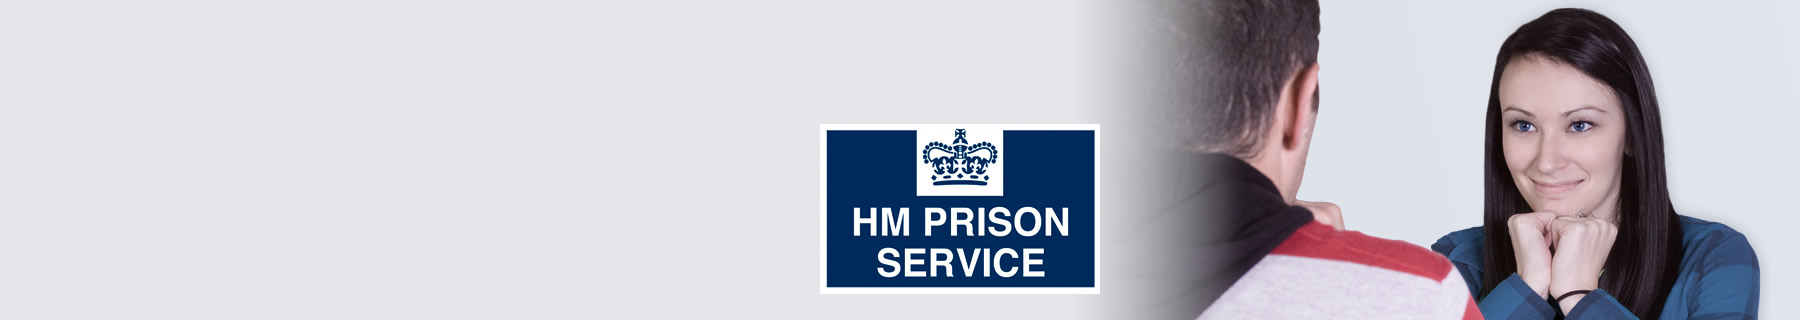 HM Prison Doncaster call processing solution handles large numbers of callers at peak call times